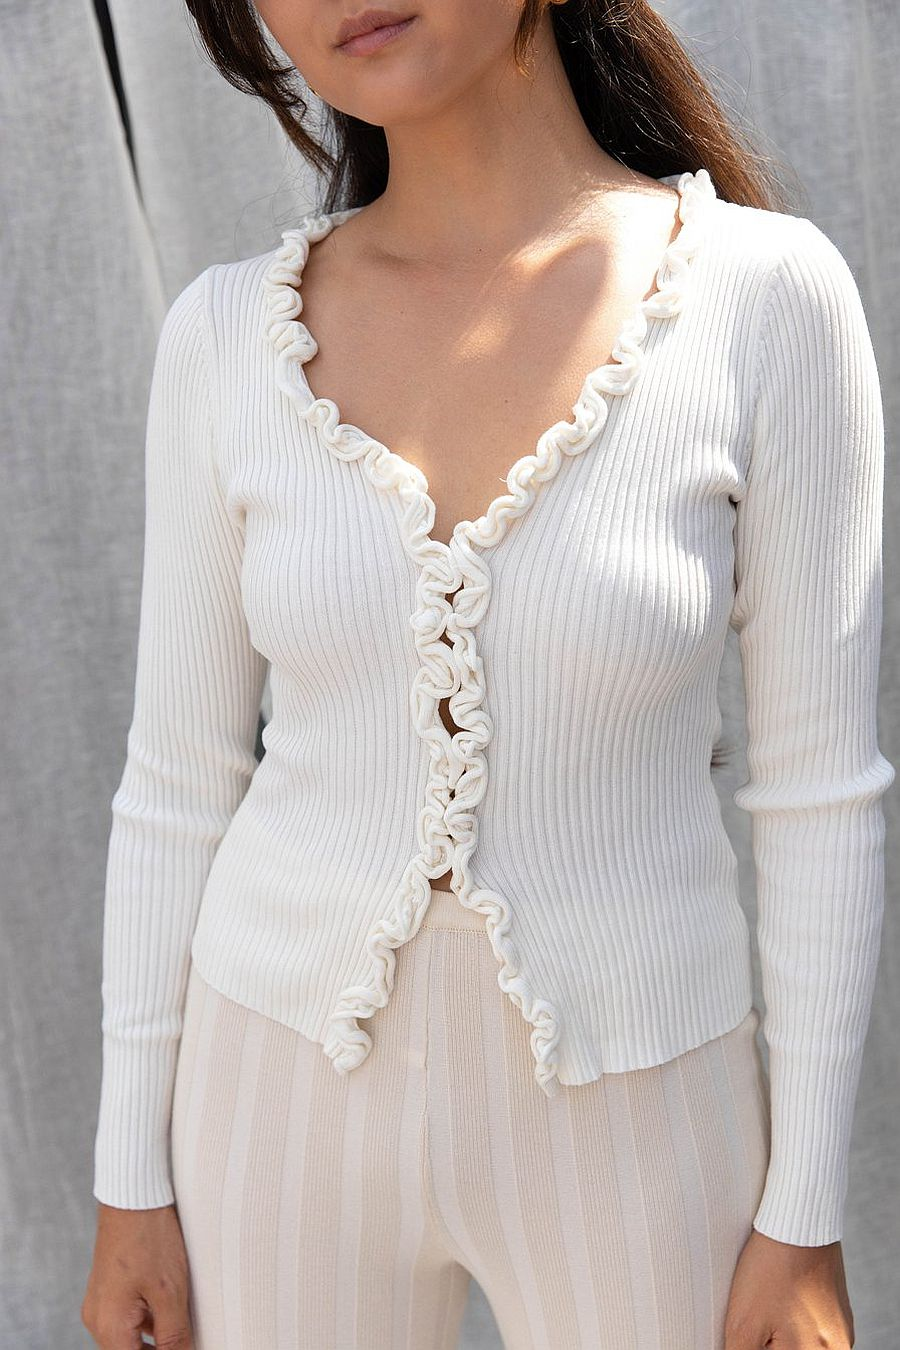 Find Me Now Charlie Ruffled Knit Top - White